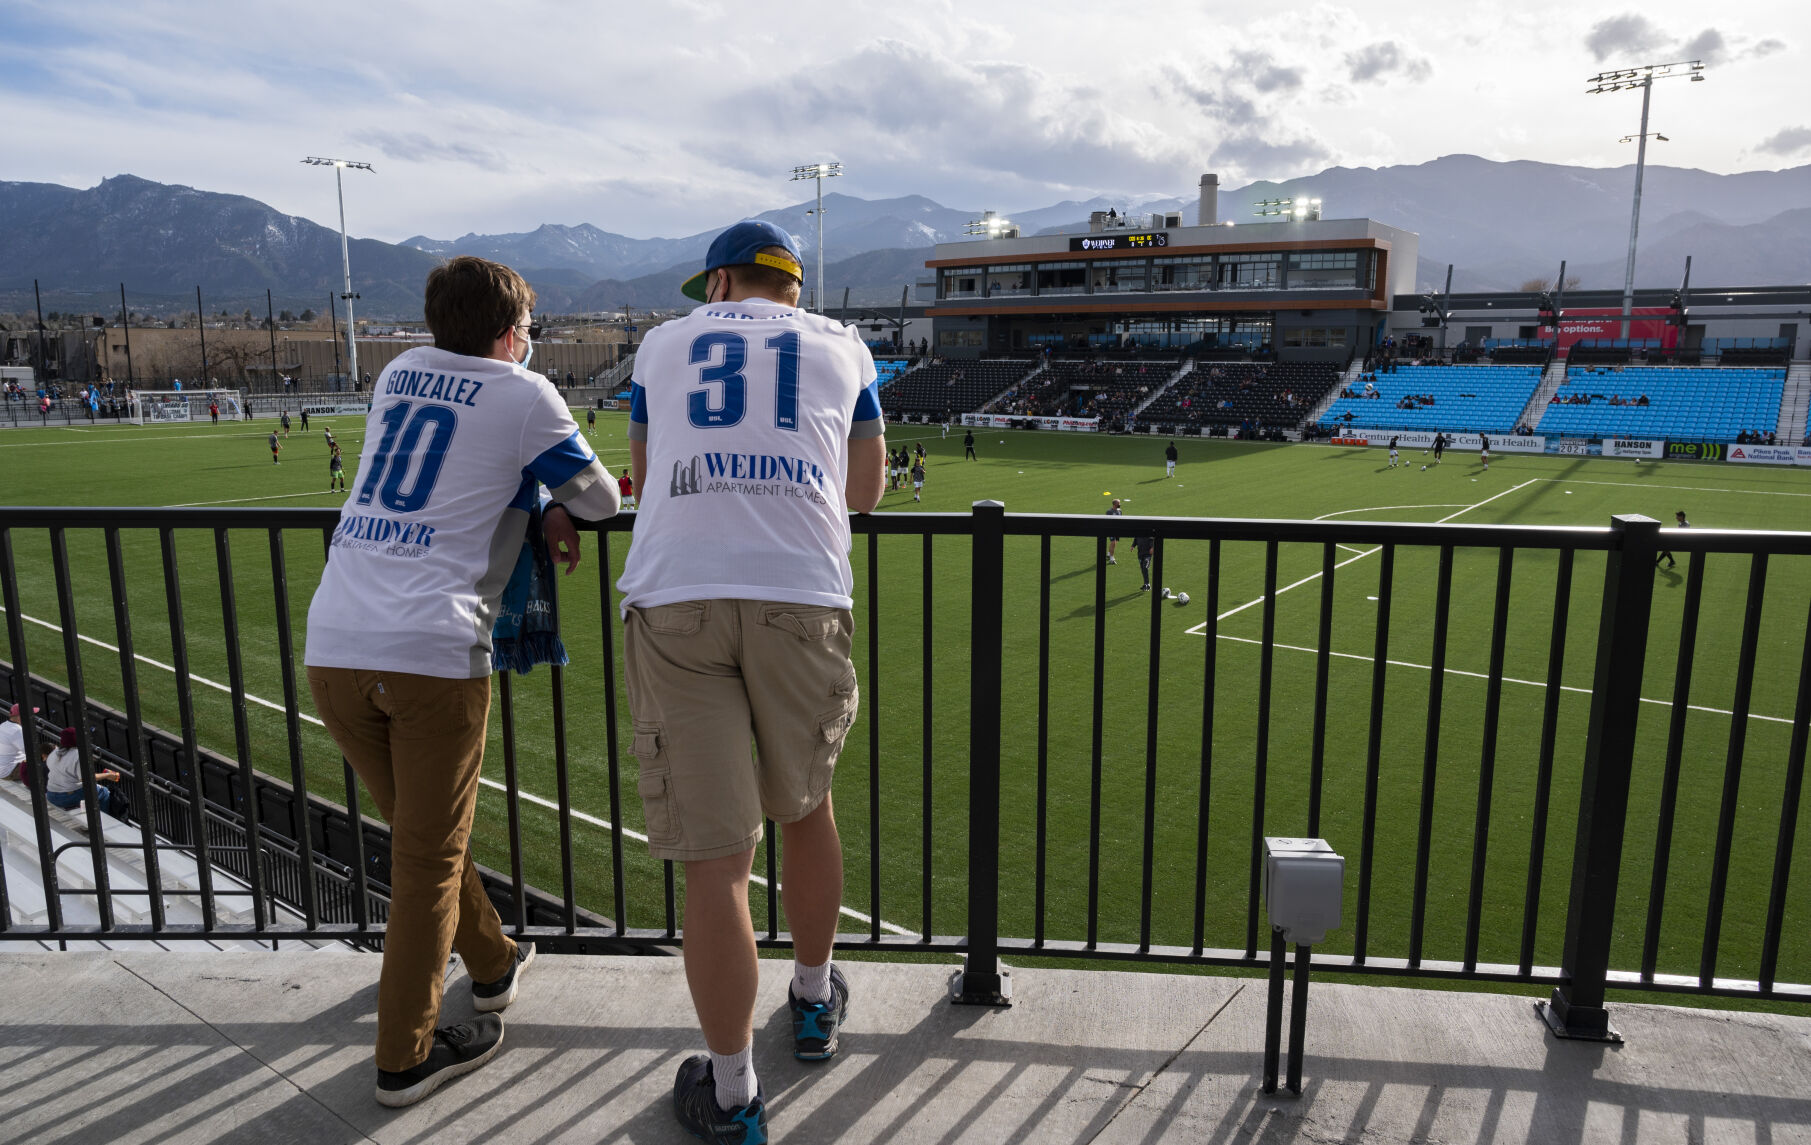 gazette.com - Rich Laden - Weidner Field expected to drive big economic development in downtown Colorado Springs